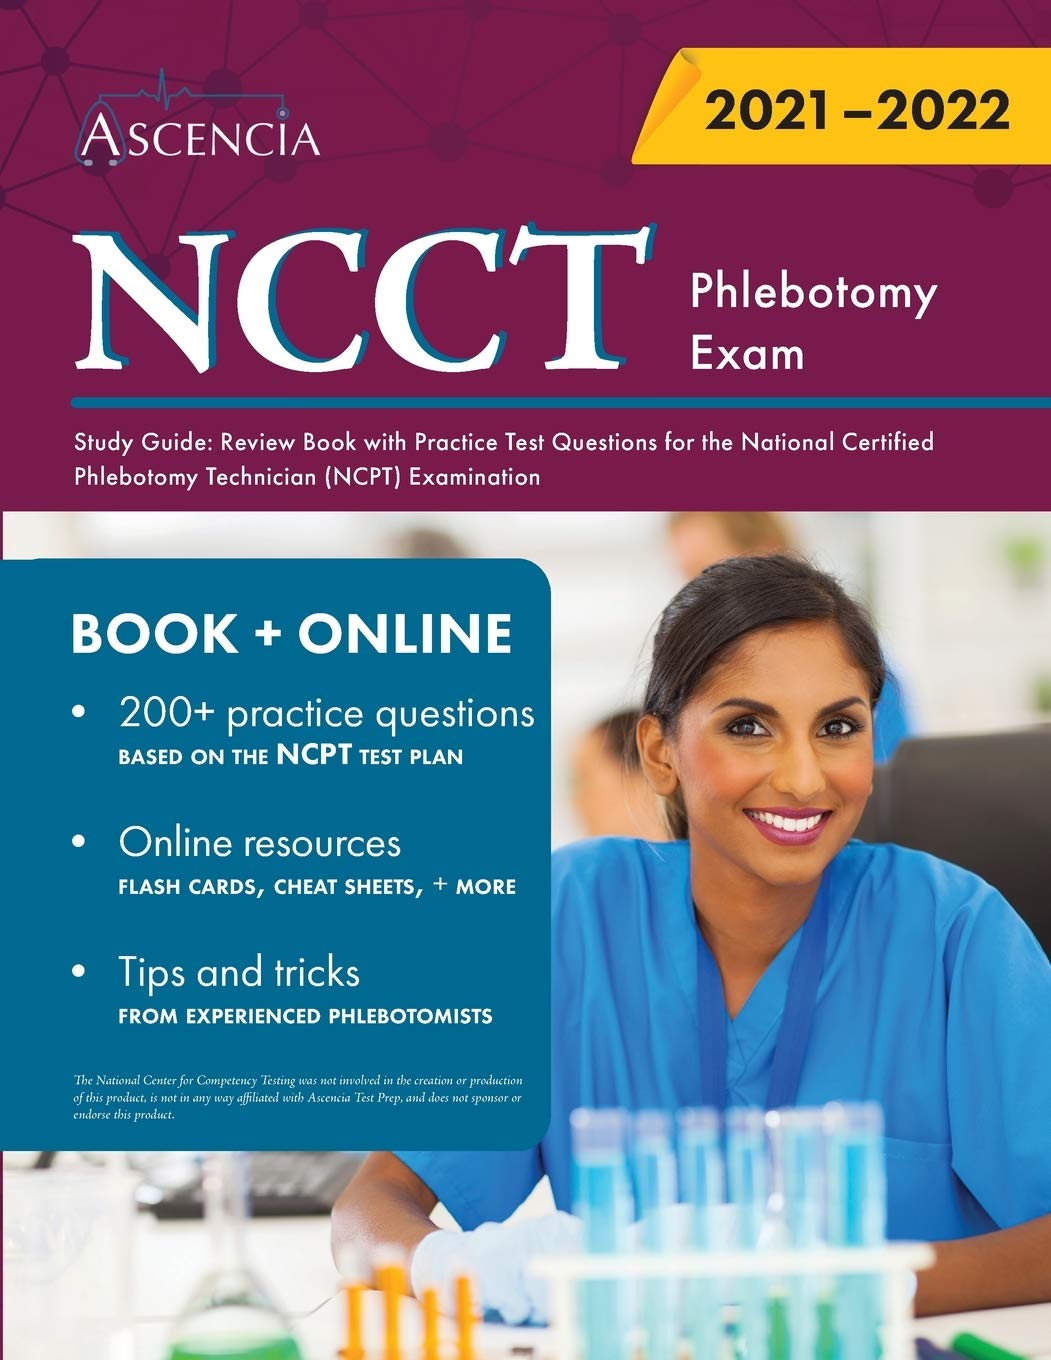 NCCT Phlebotomy Exam Study Guide: Review Book with Practice Test Questions for the National Certified Phlebotomy Technician (NCPT) Examination